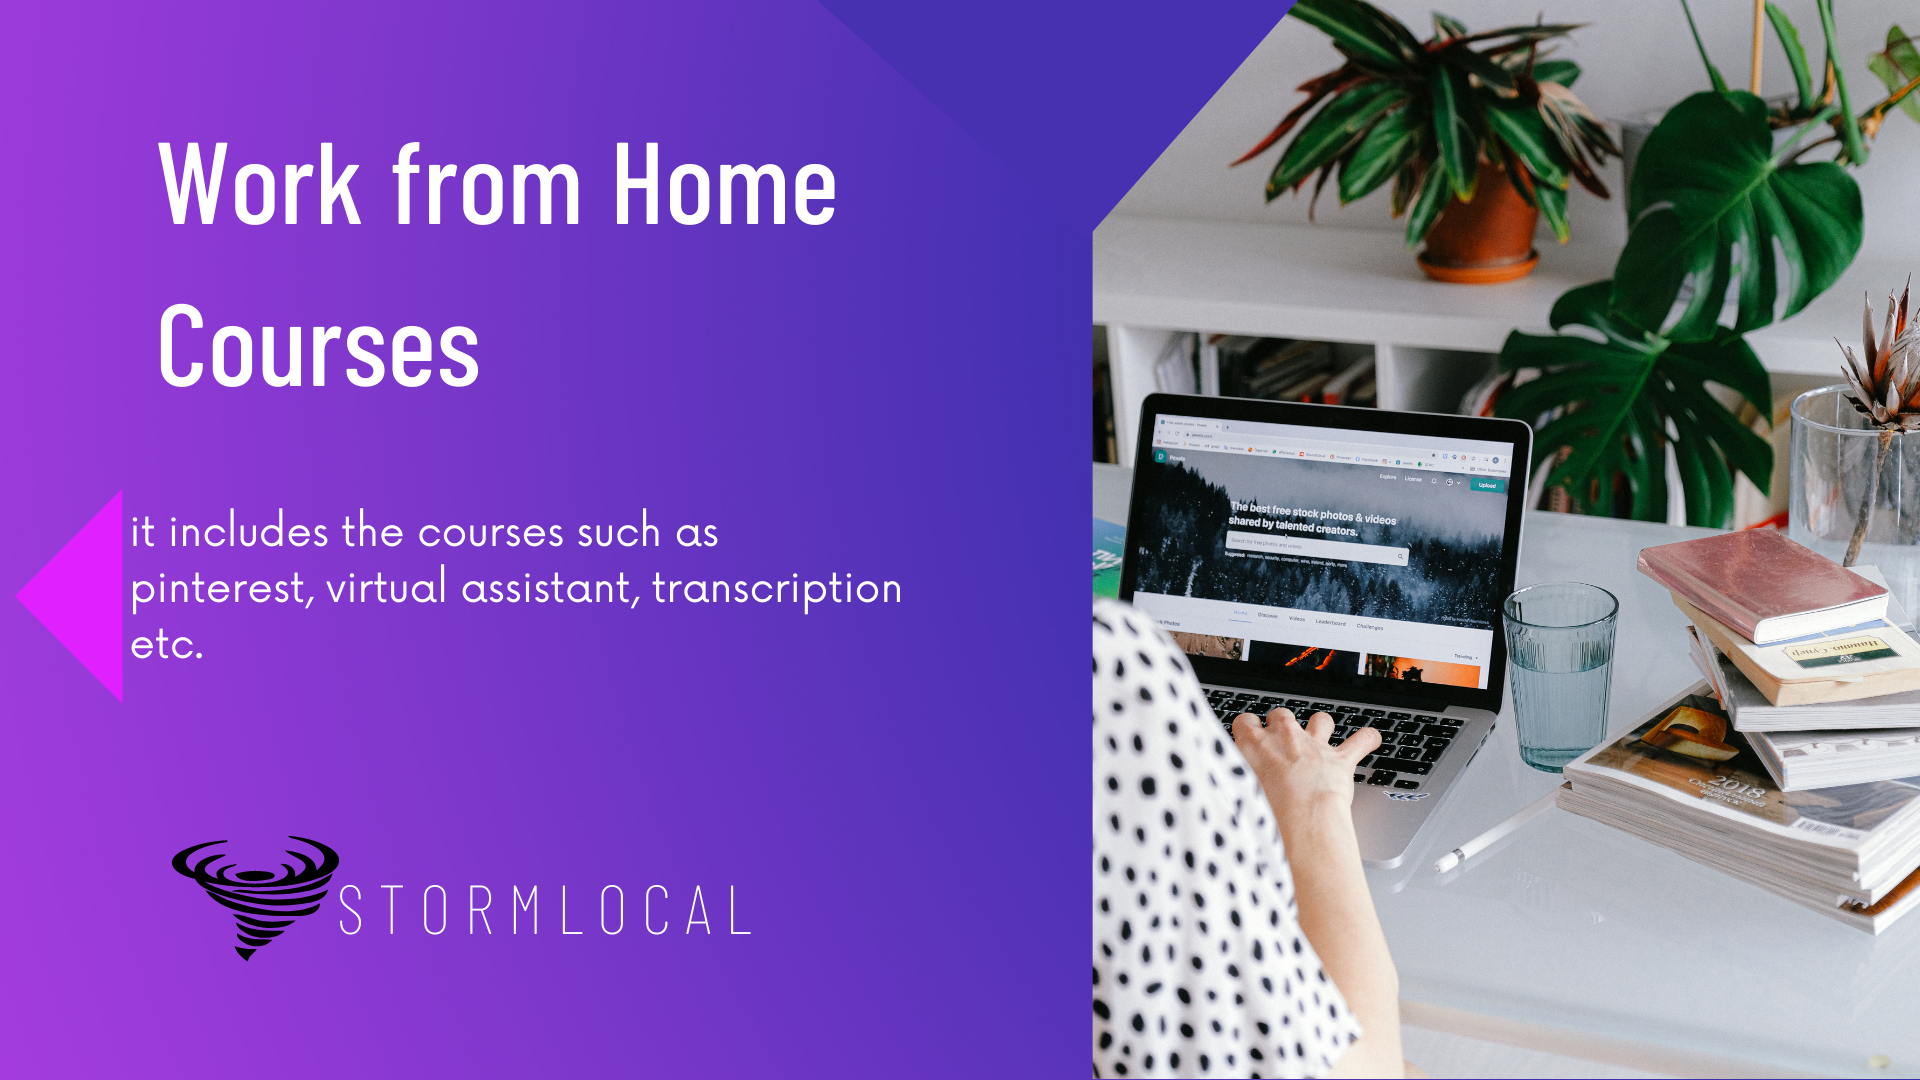 The Most Awesome Work from Home Courses to Take This Year